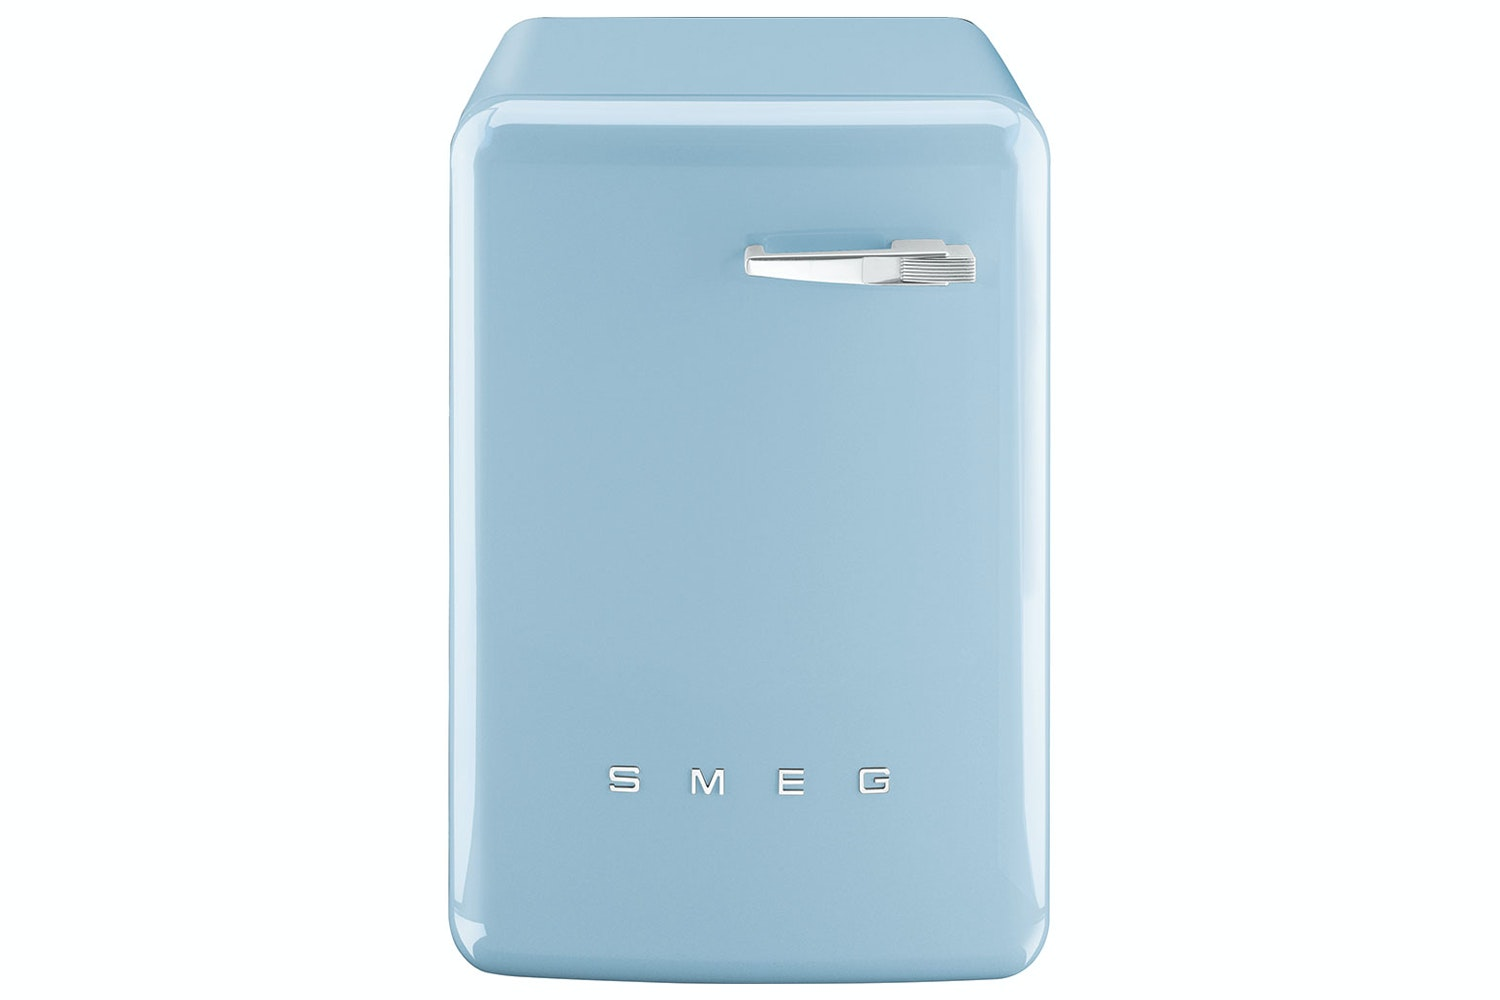 Smeg Freestanding Washing Machine | Pastel Blue